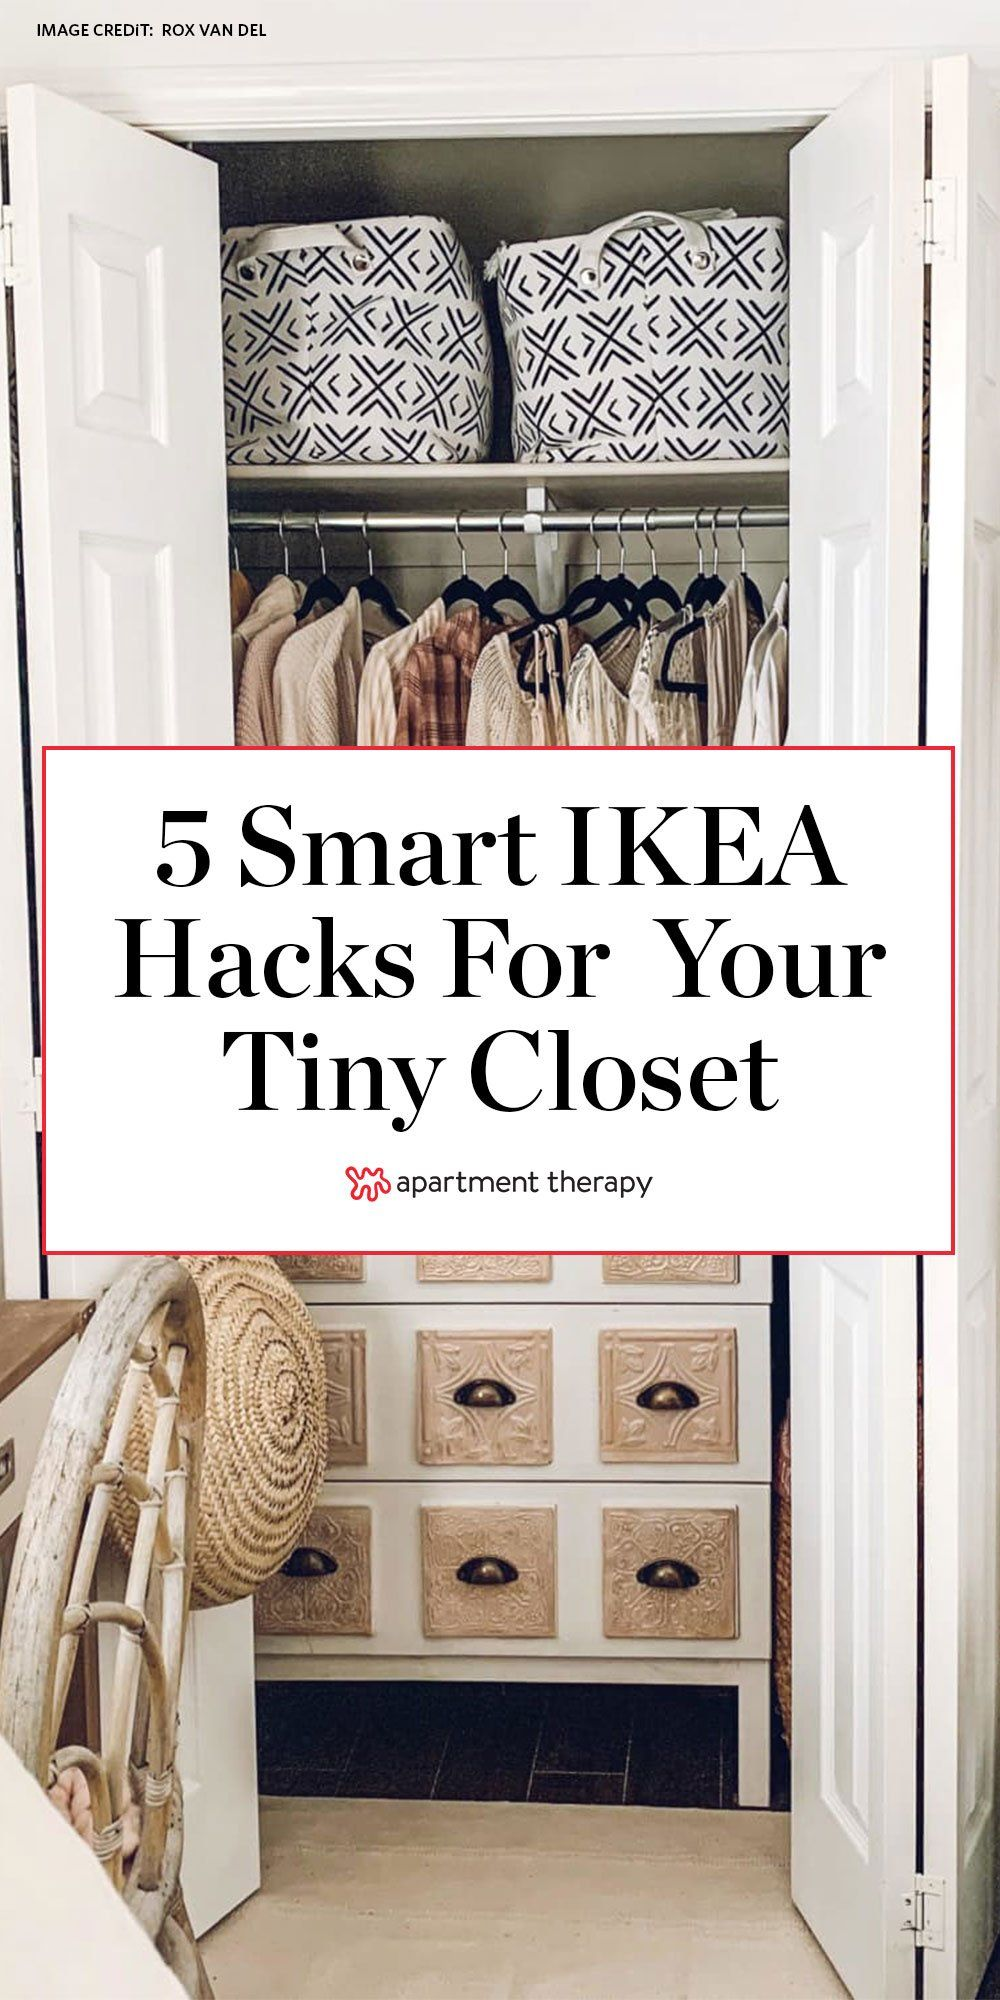 5 Smart Ikea Hacks To Pack More Storage Into Your Tiny Closet In 2020 Ikea Hack Tiny Closet Ikea